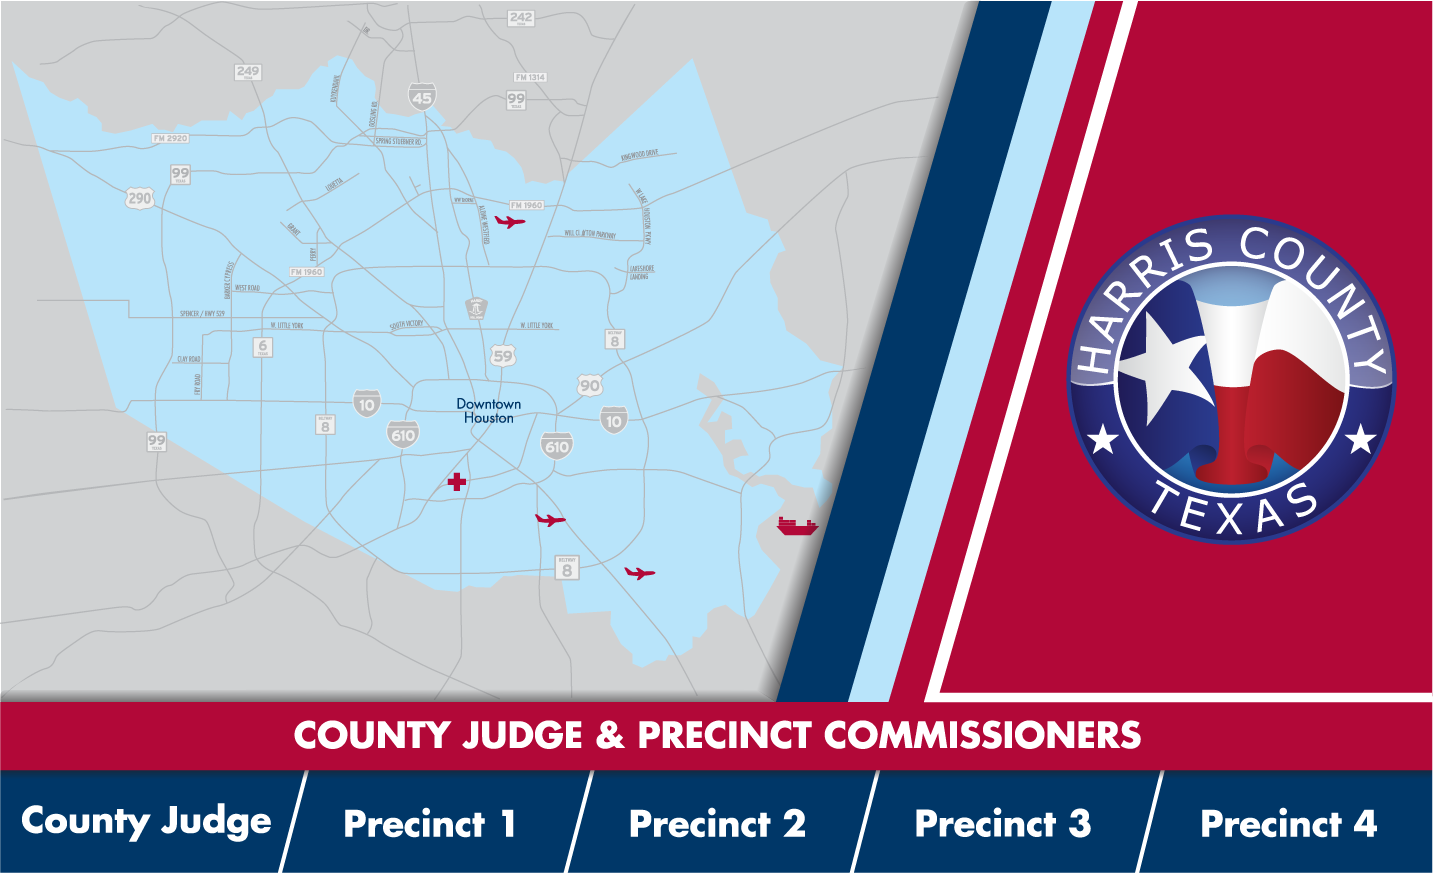 Image map showing the area outline and logo of Harris County